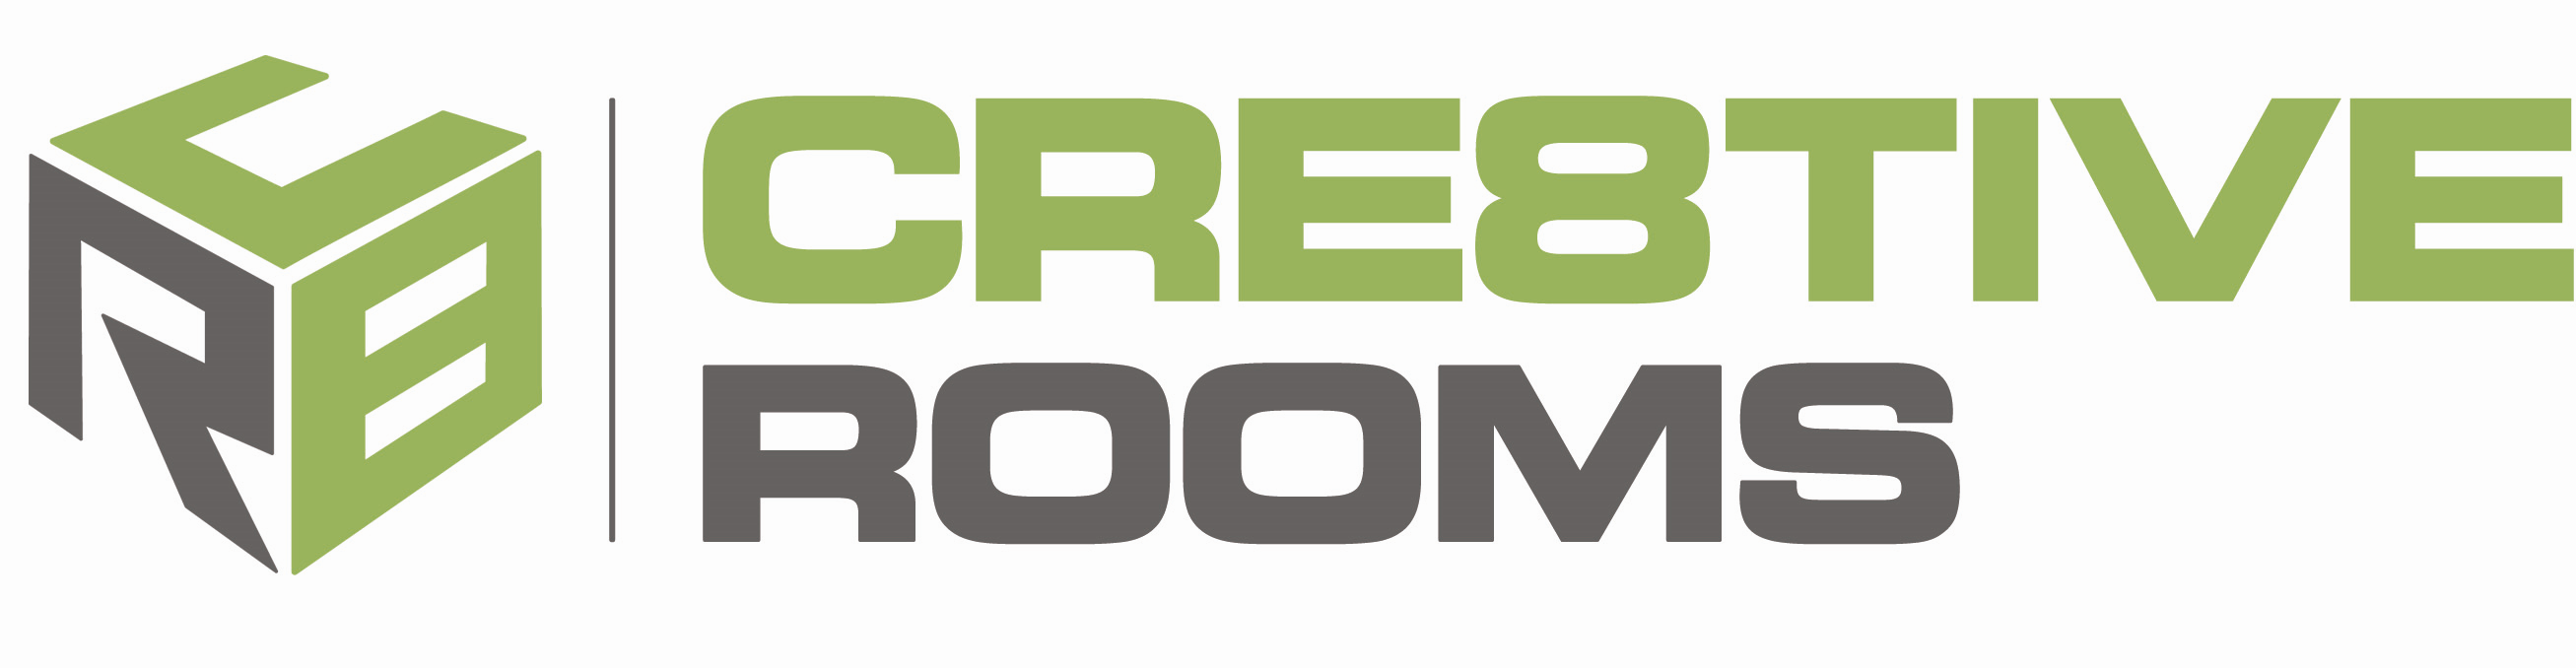 Cre8tive-Rooms-